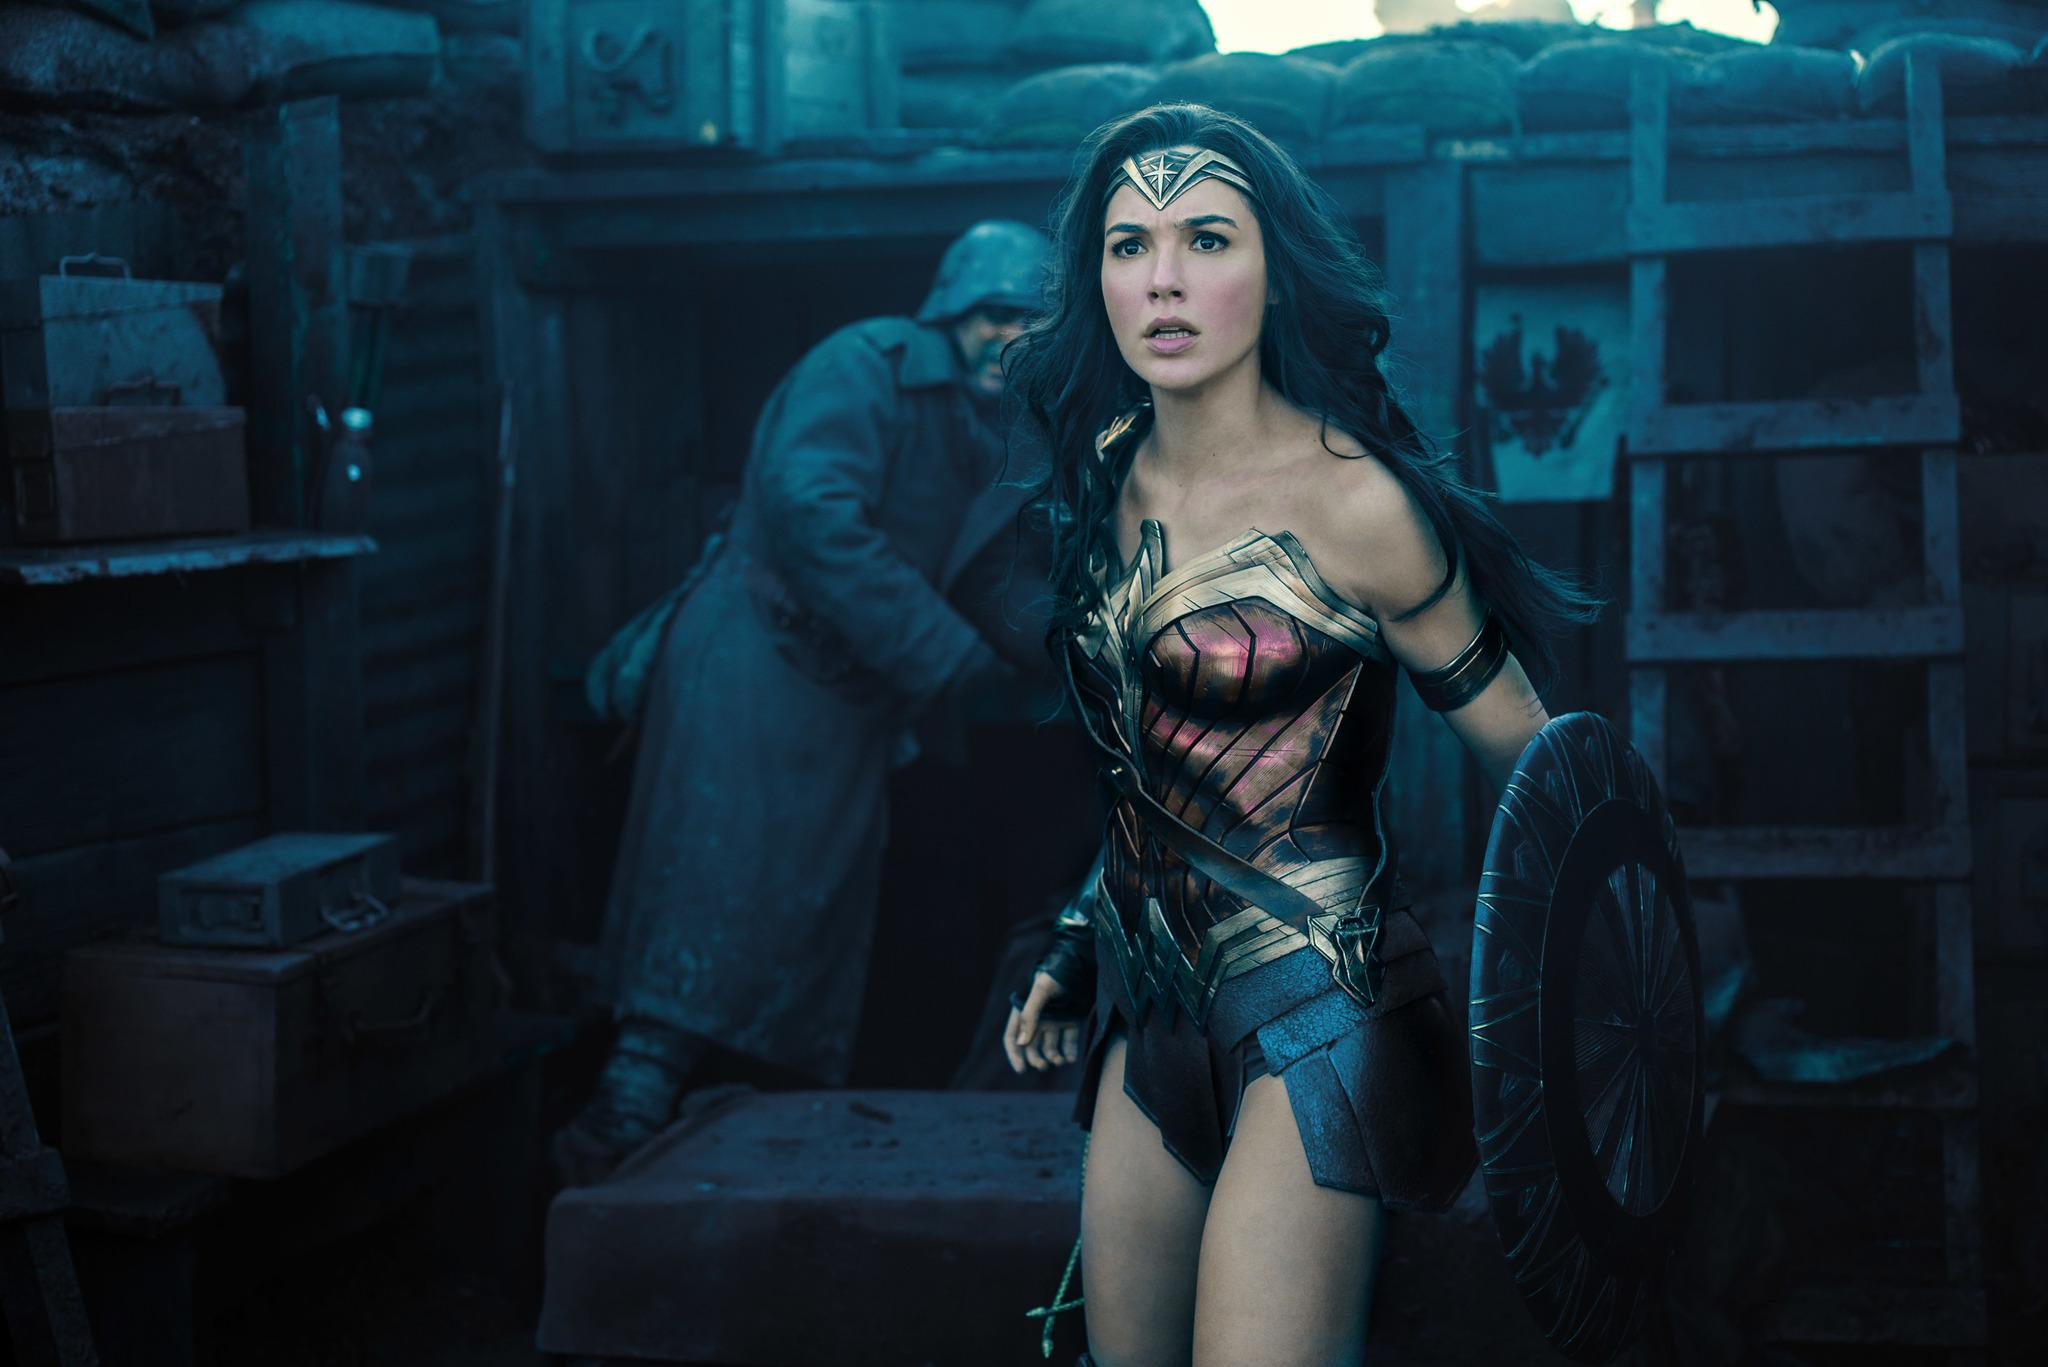 WONDER WOMAN. Photo courtesy of Warner Bros Entertainment Inc